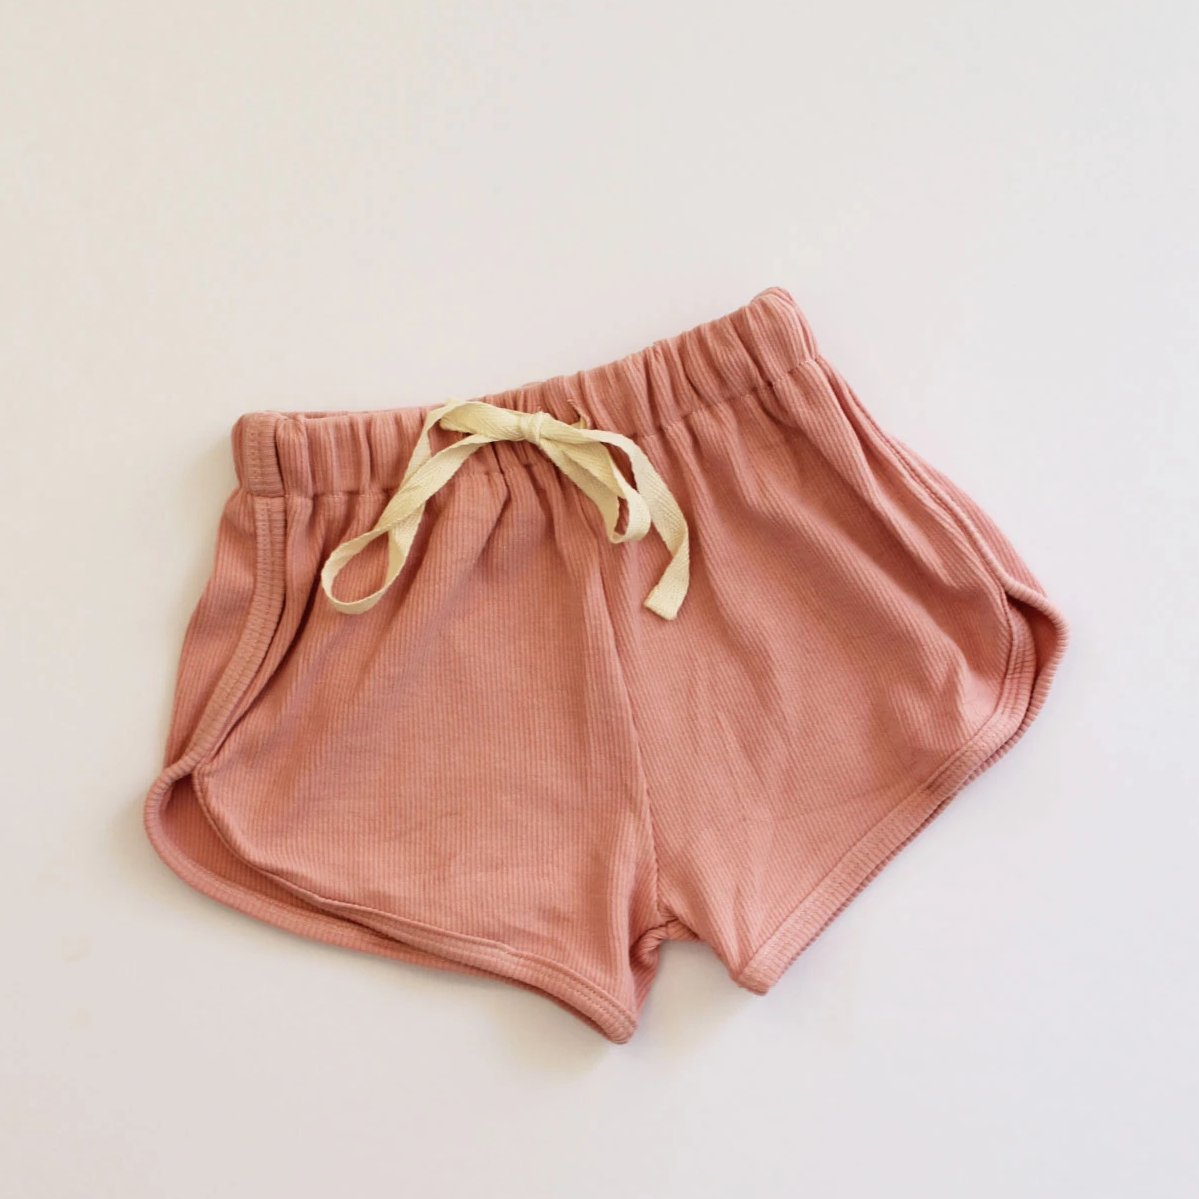 Ribbed cotton kids shorts. In blush and coral. Drawstring waist. Cotton. Kids clothing. Affordable Australian kids clothing.